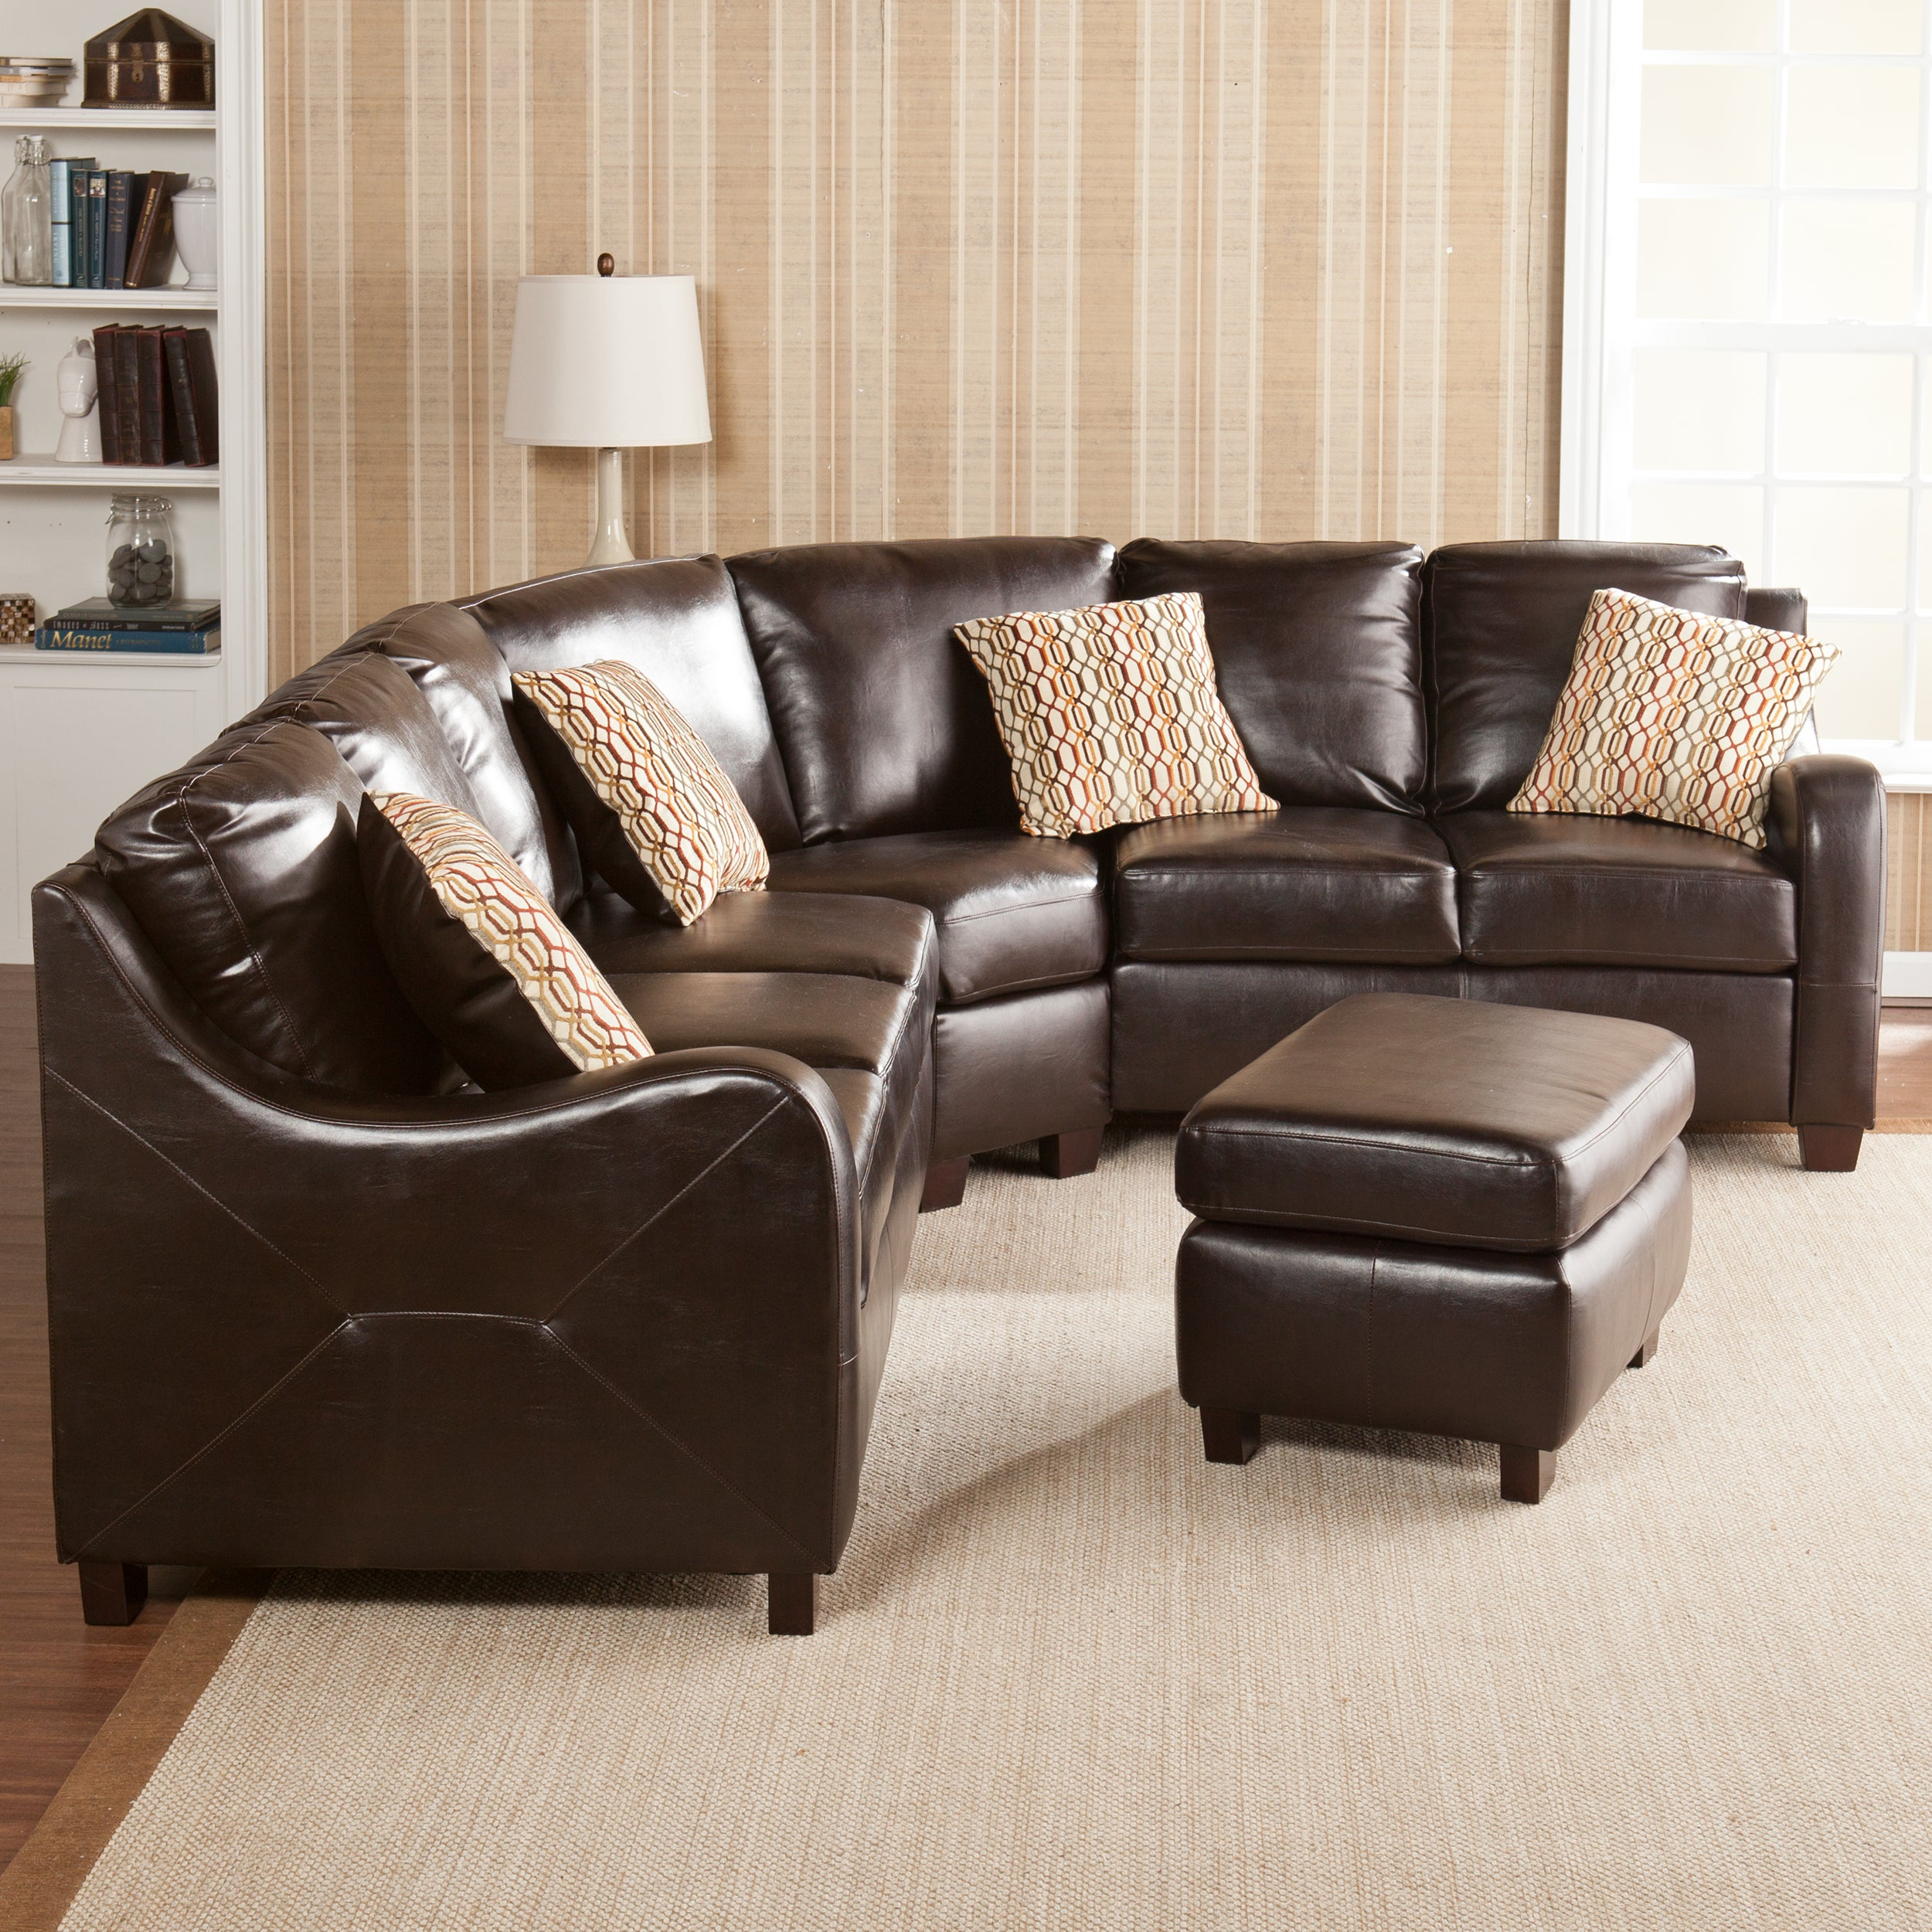 Beautiful Sofa Sets : Beautiful Brown Sectional Sofa Set Couch Loveseat Ottoman Living Room ...